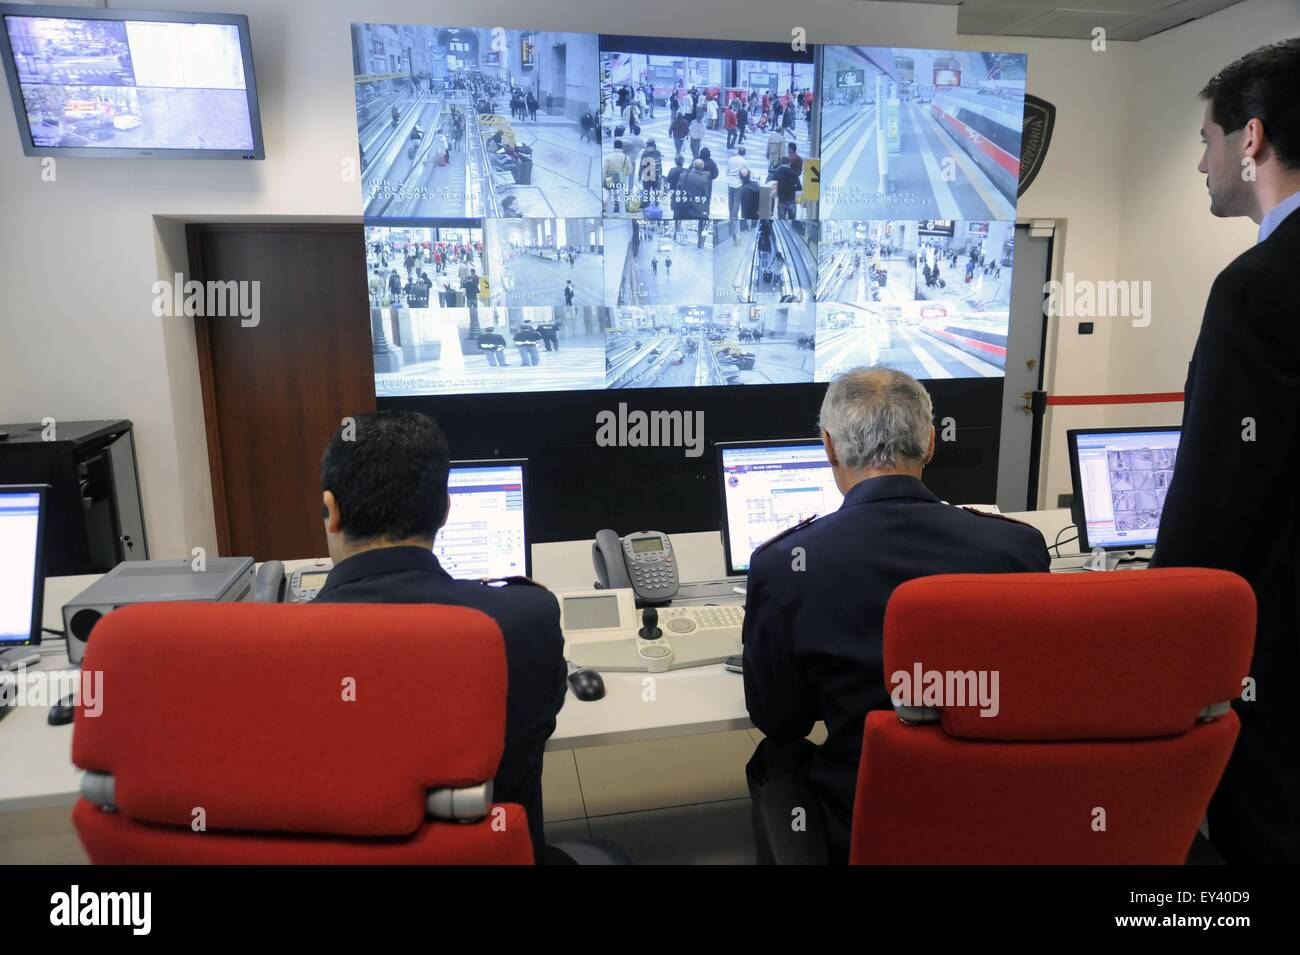 Milan, Italy, police control room for video surveillance system at railway Central Station - Stock Image